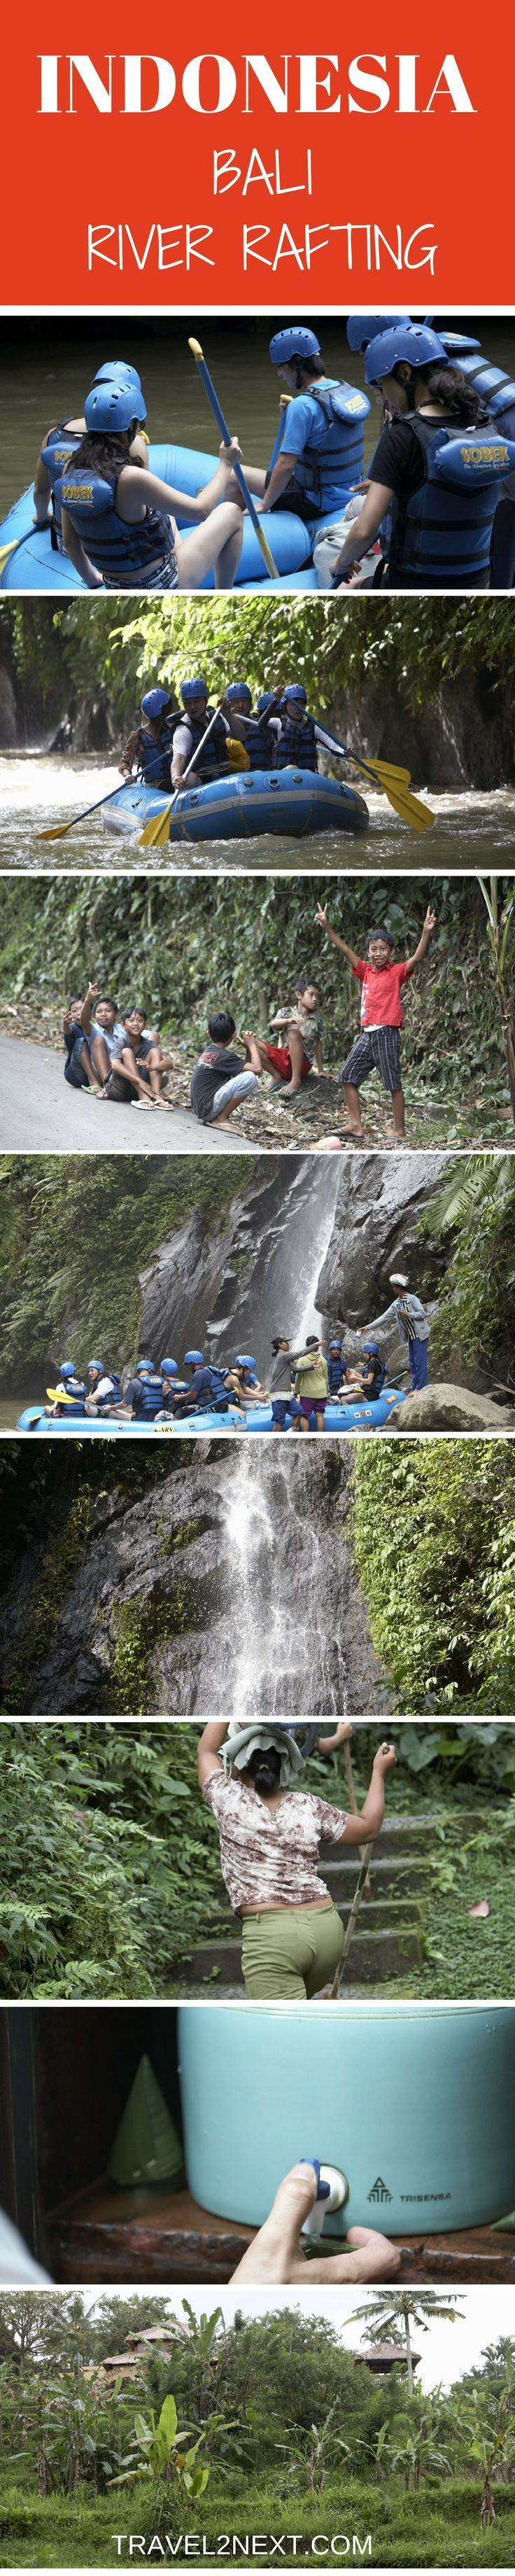 Ayung River Rafting, Bali adventure. The screams grow louder as I descend through the lush tropical rainforest towards the river.